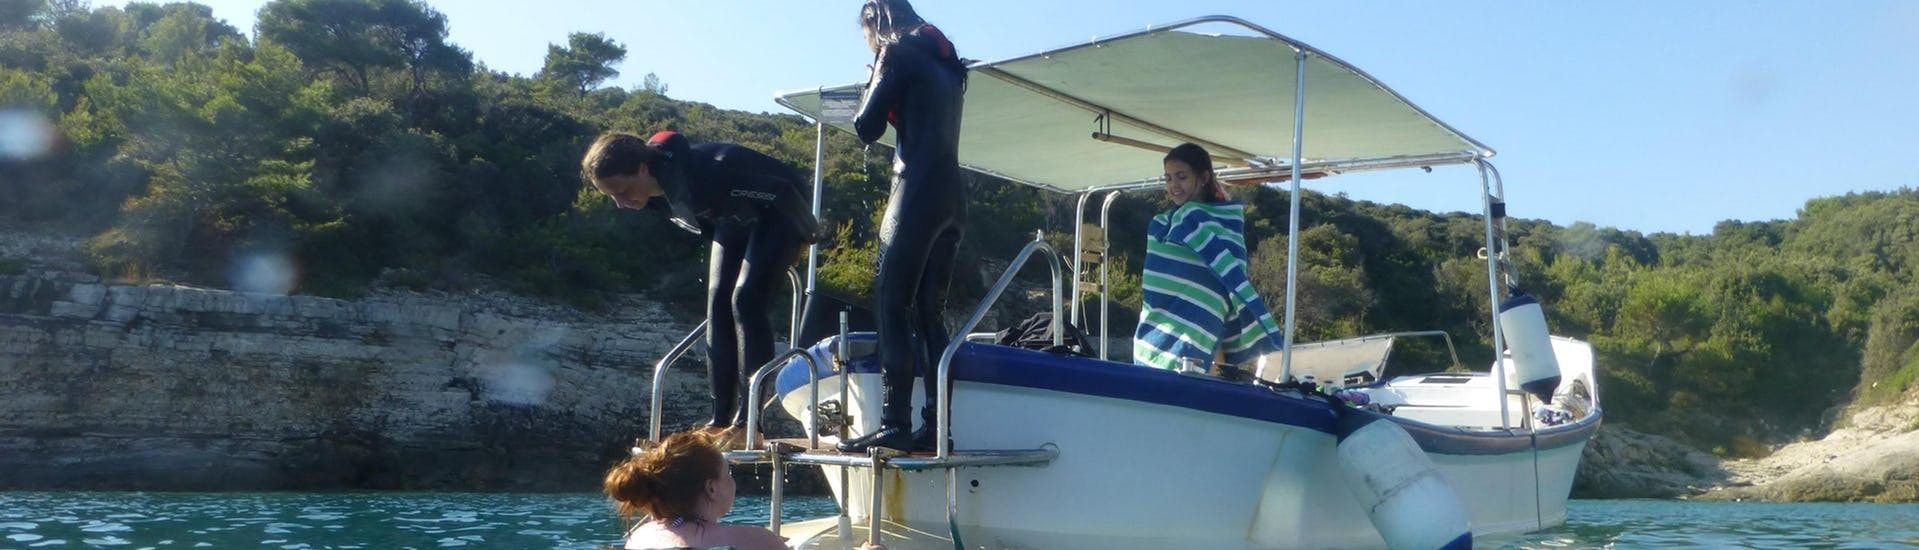 snorkeling-tour-by-boat-in-pula-orca-diving-center-hero